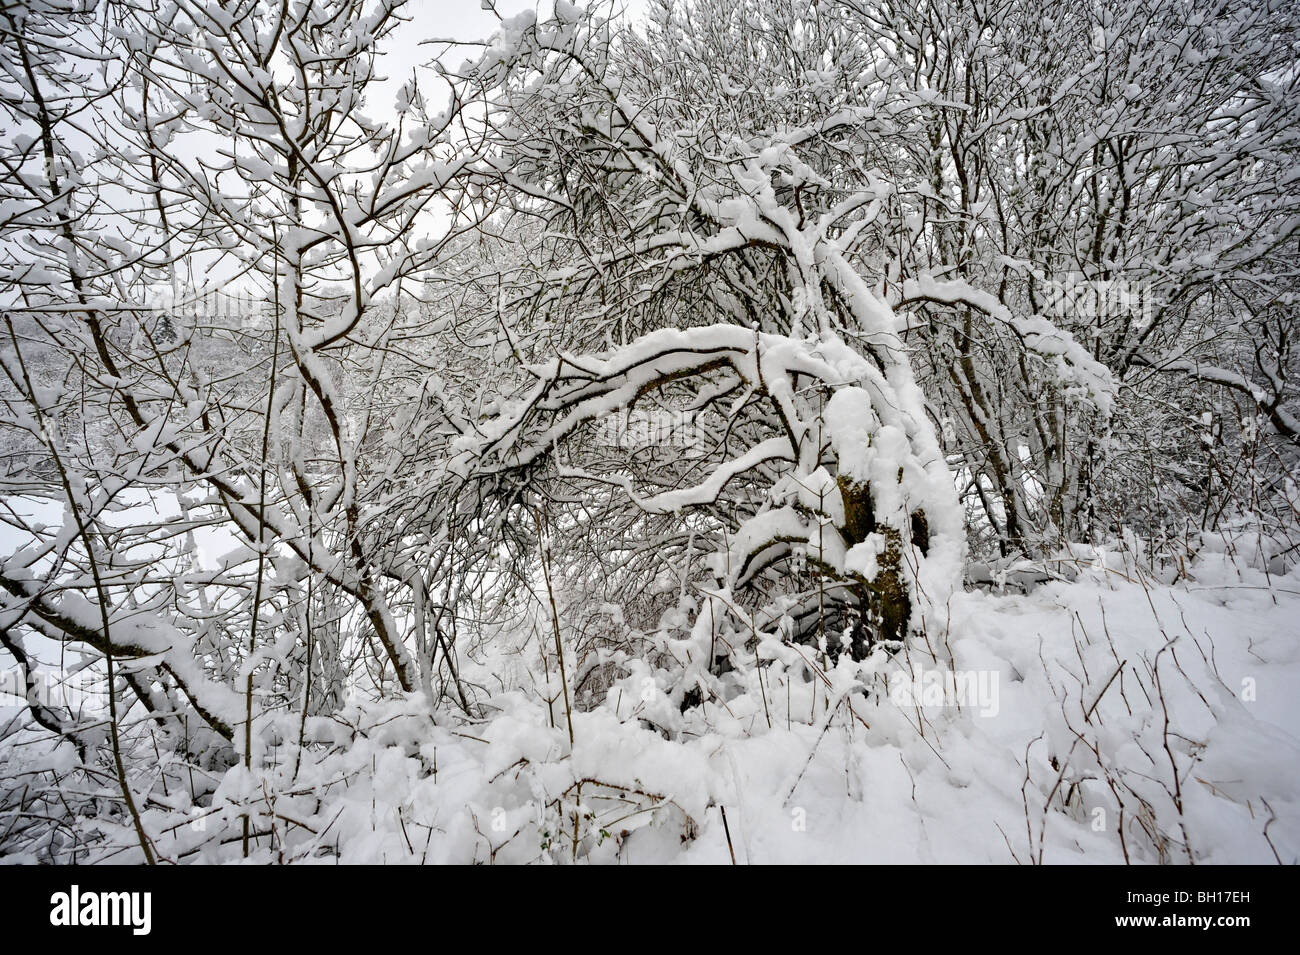 Deeply snow-covered bushes and trees in parkland - Stock Image